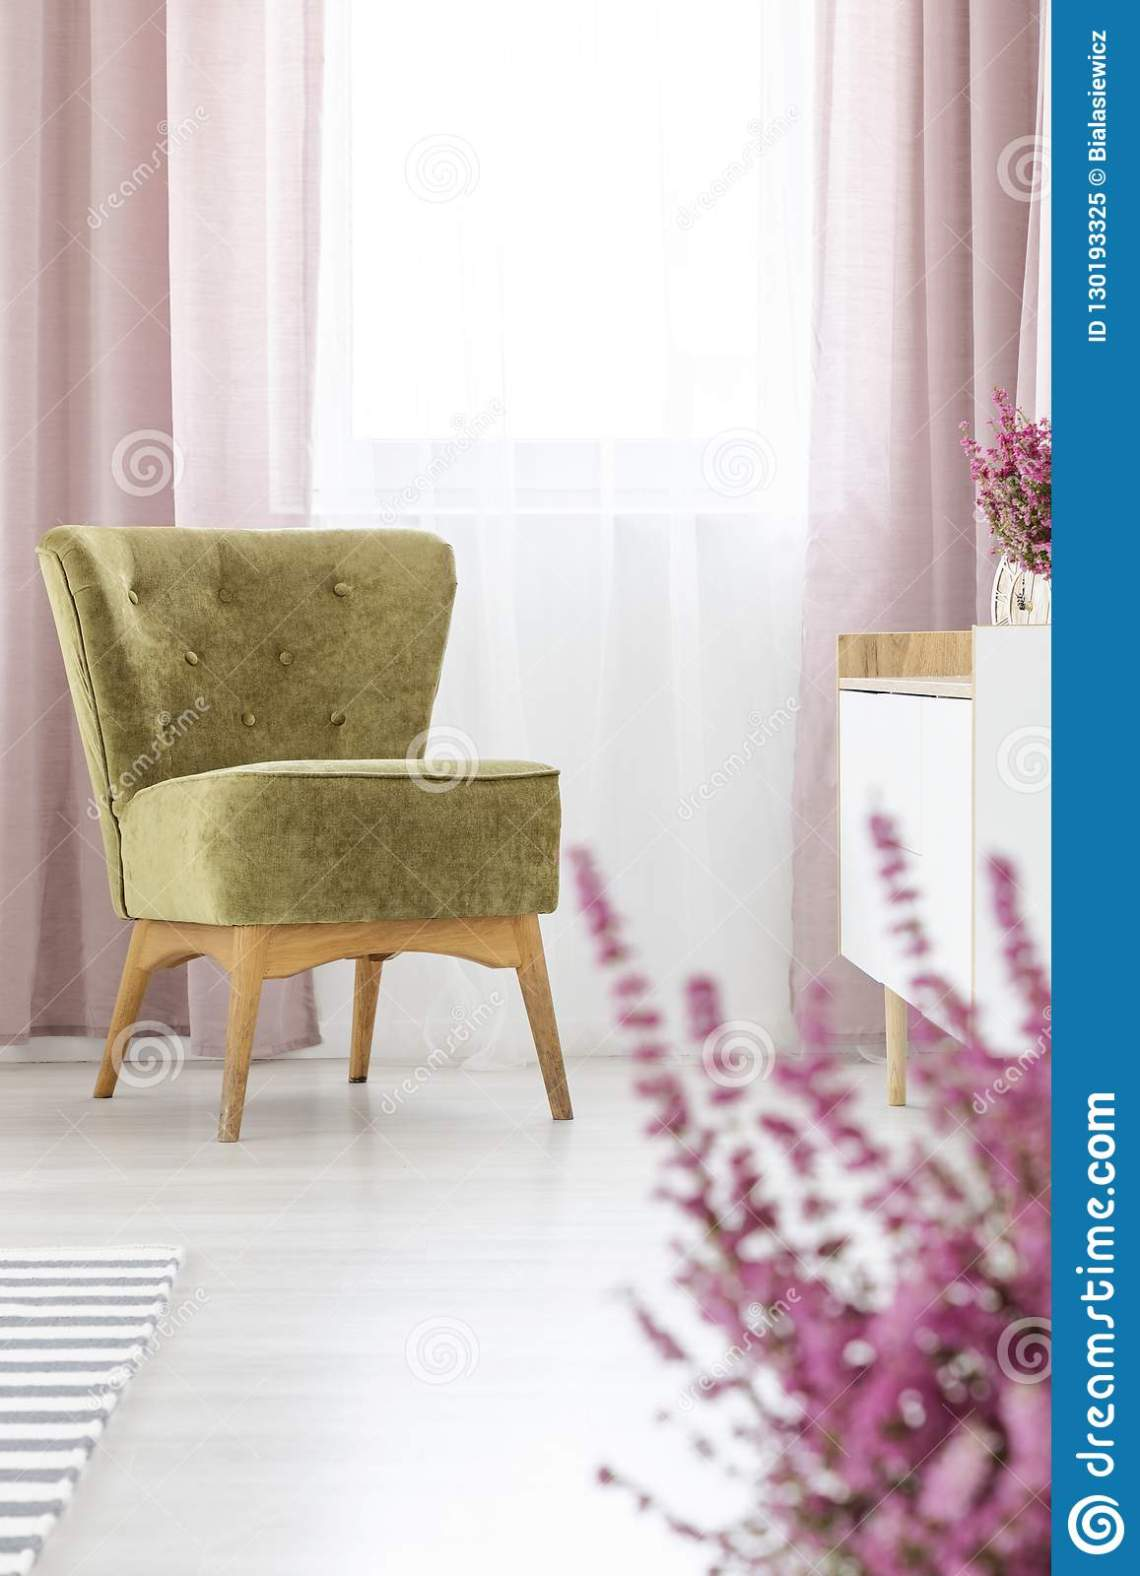 Stylish Olive Green Armchair In Elegant Living Room With Lilac Curtains Stock Image Image Of House Flower 130193325